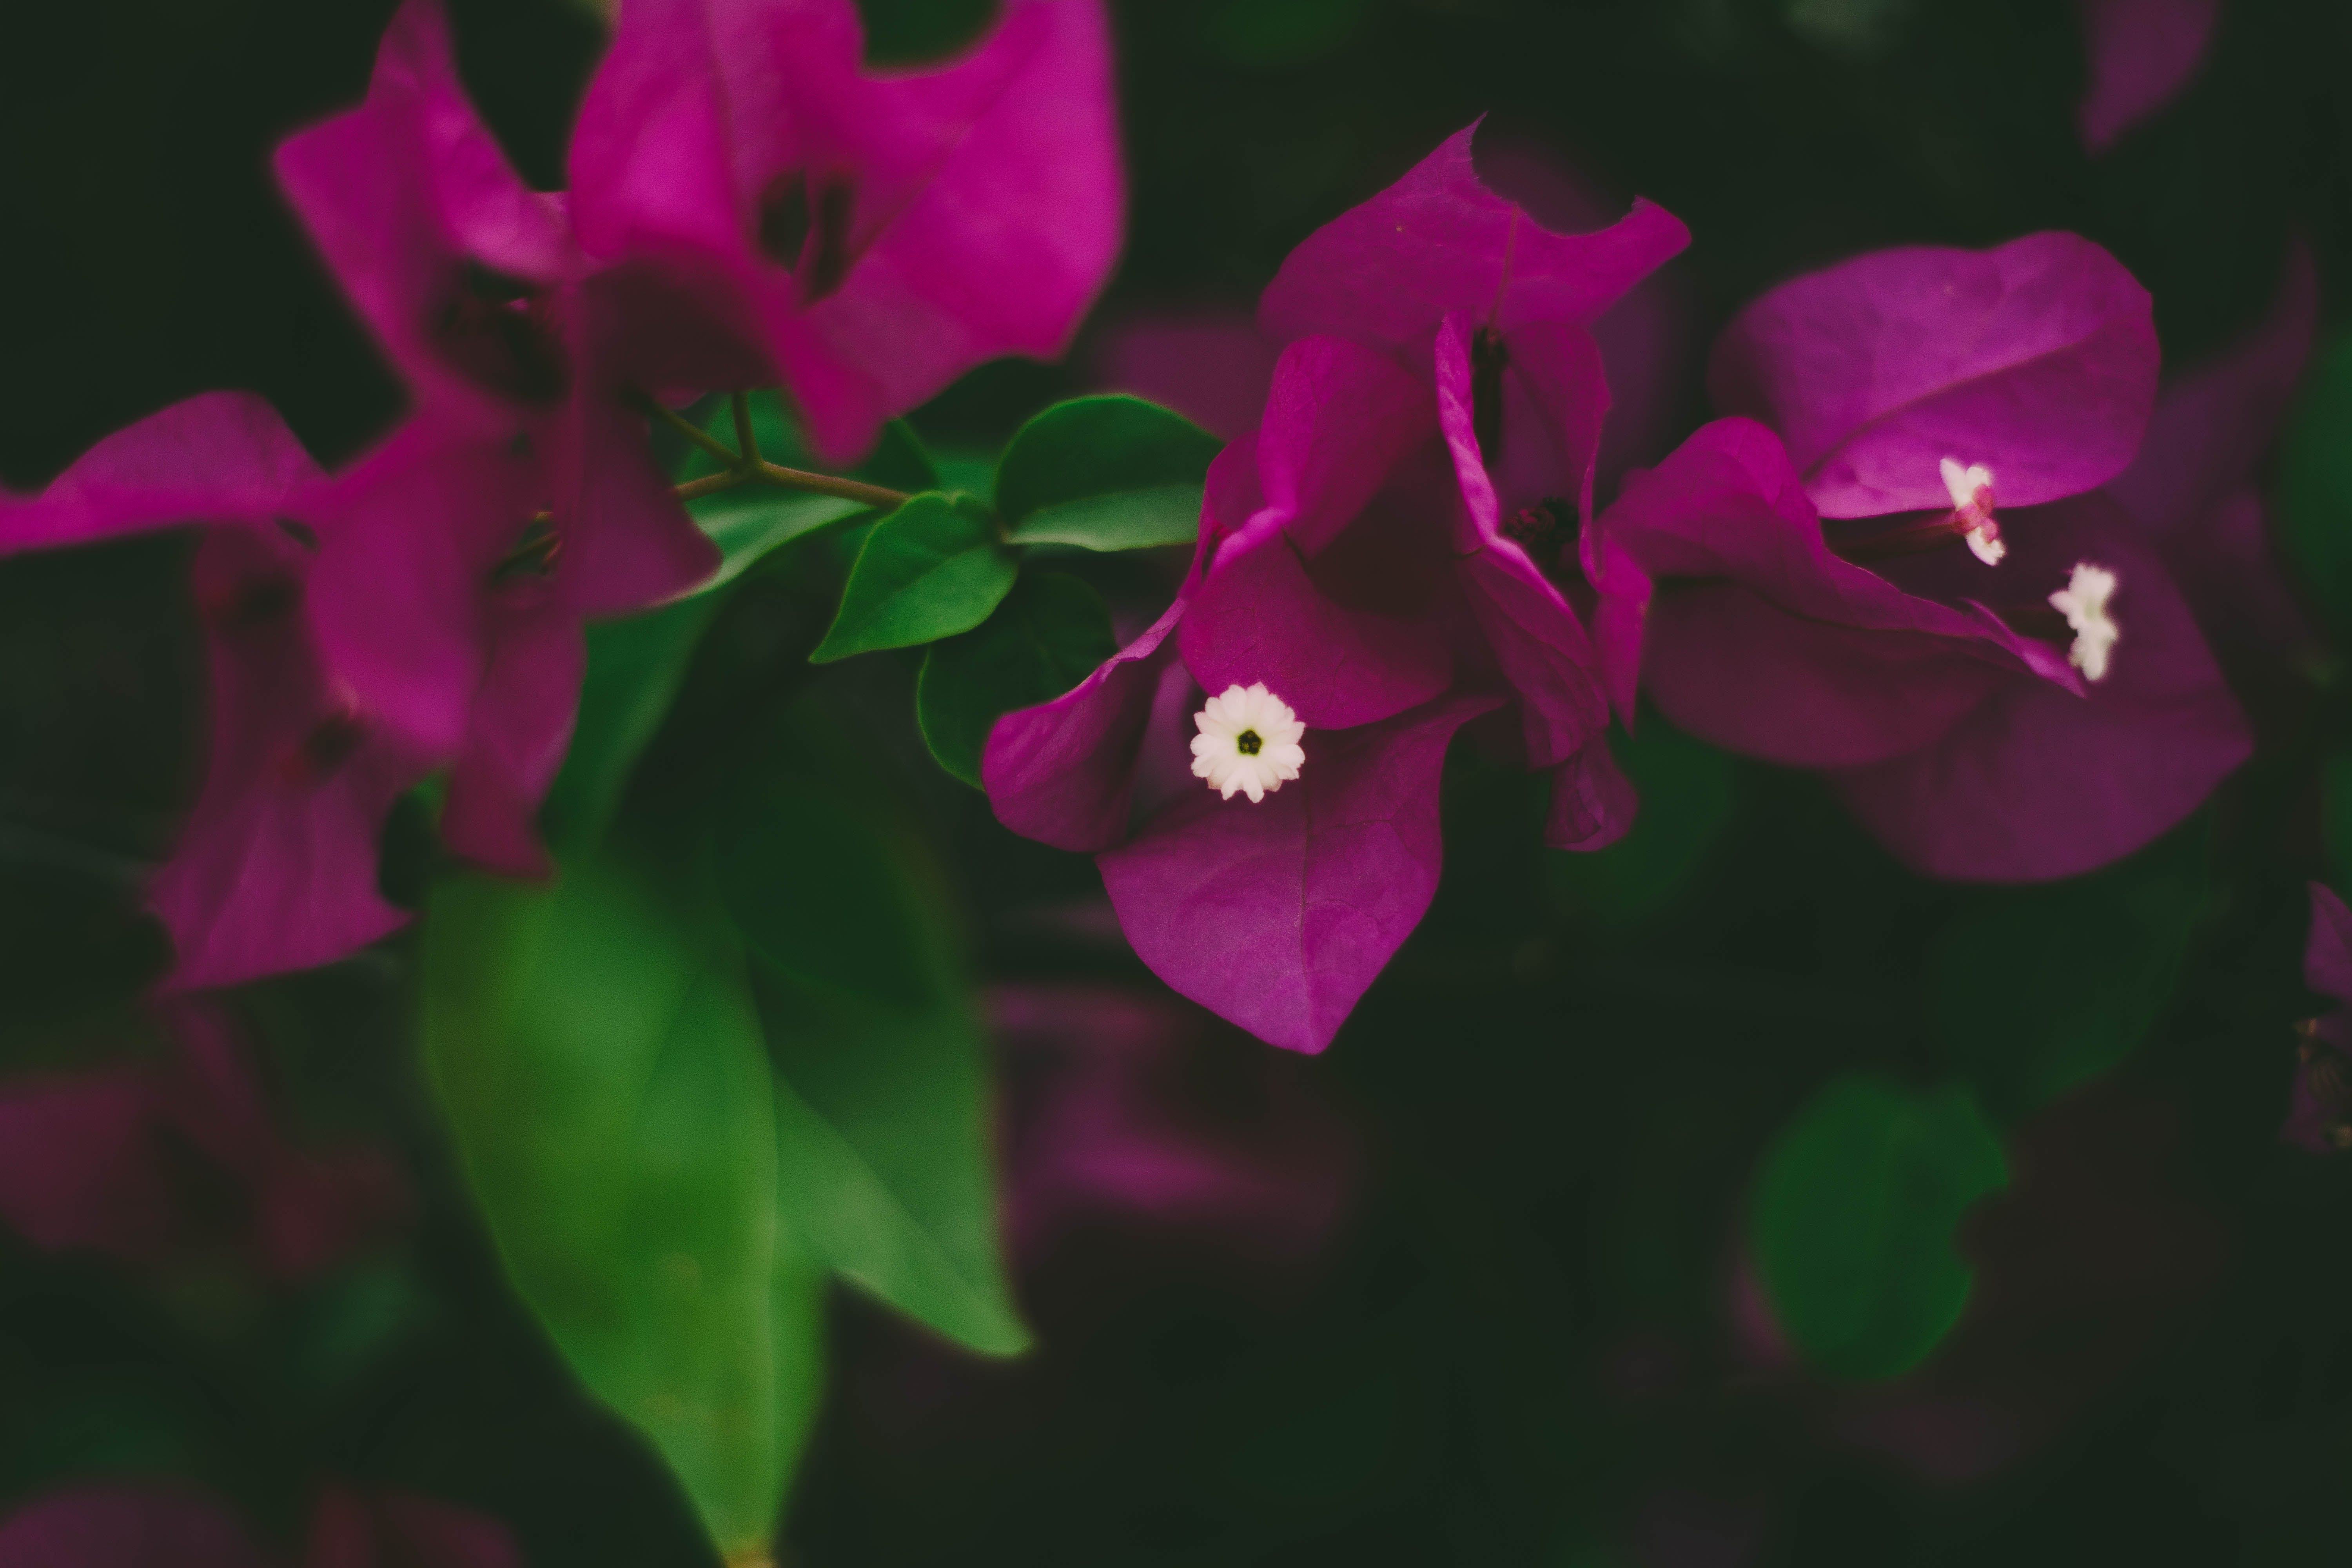 Close-Up Photography of Pink Bougainvillea